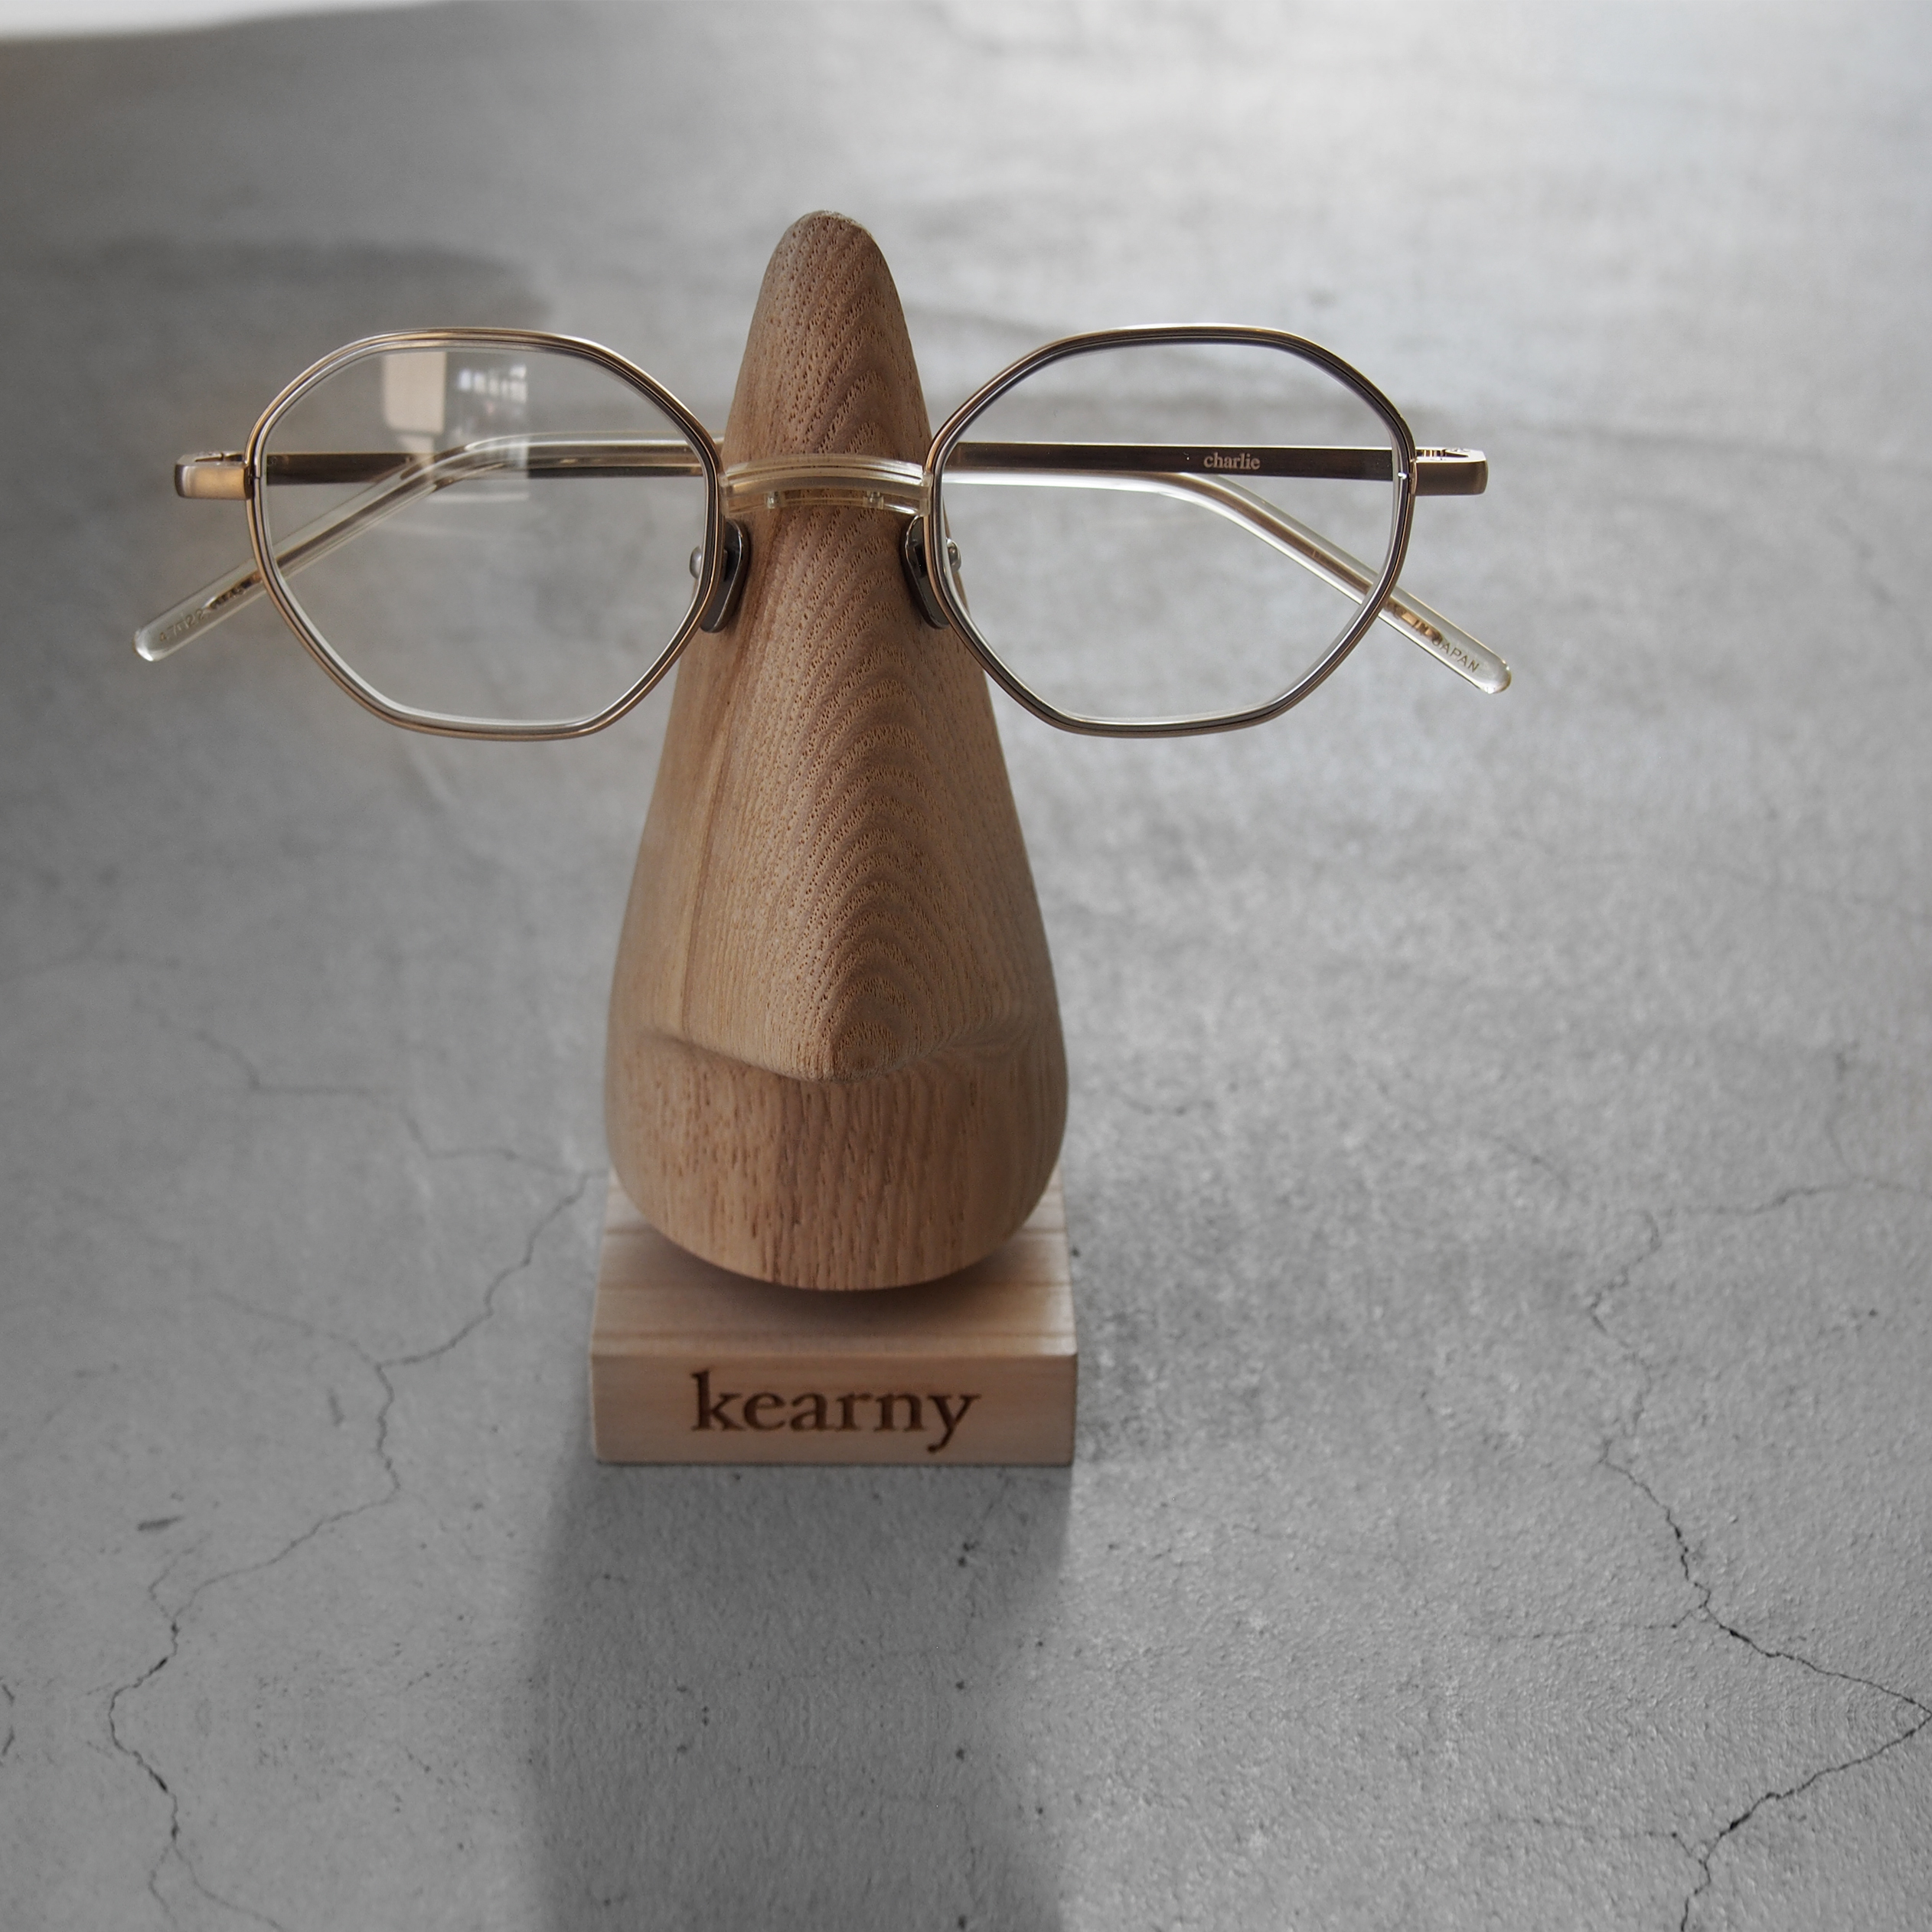 Kearny Charlie gold (clear lens)